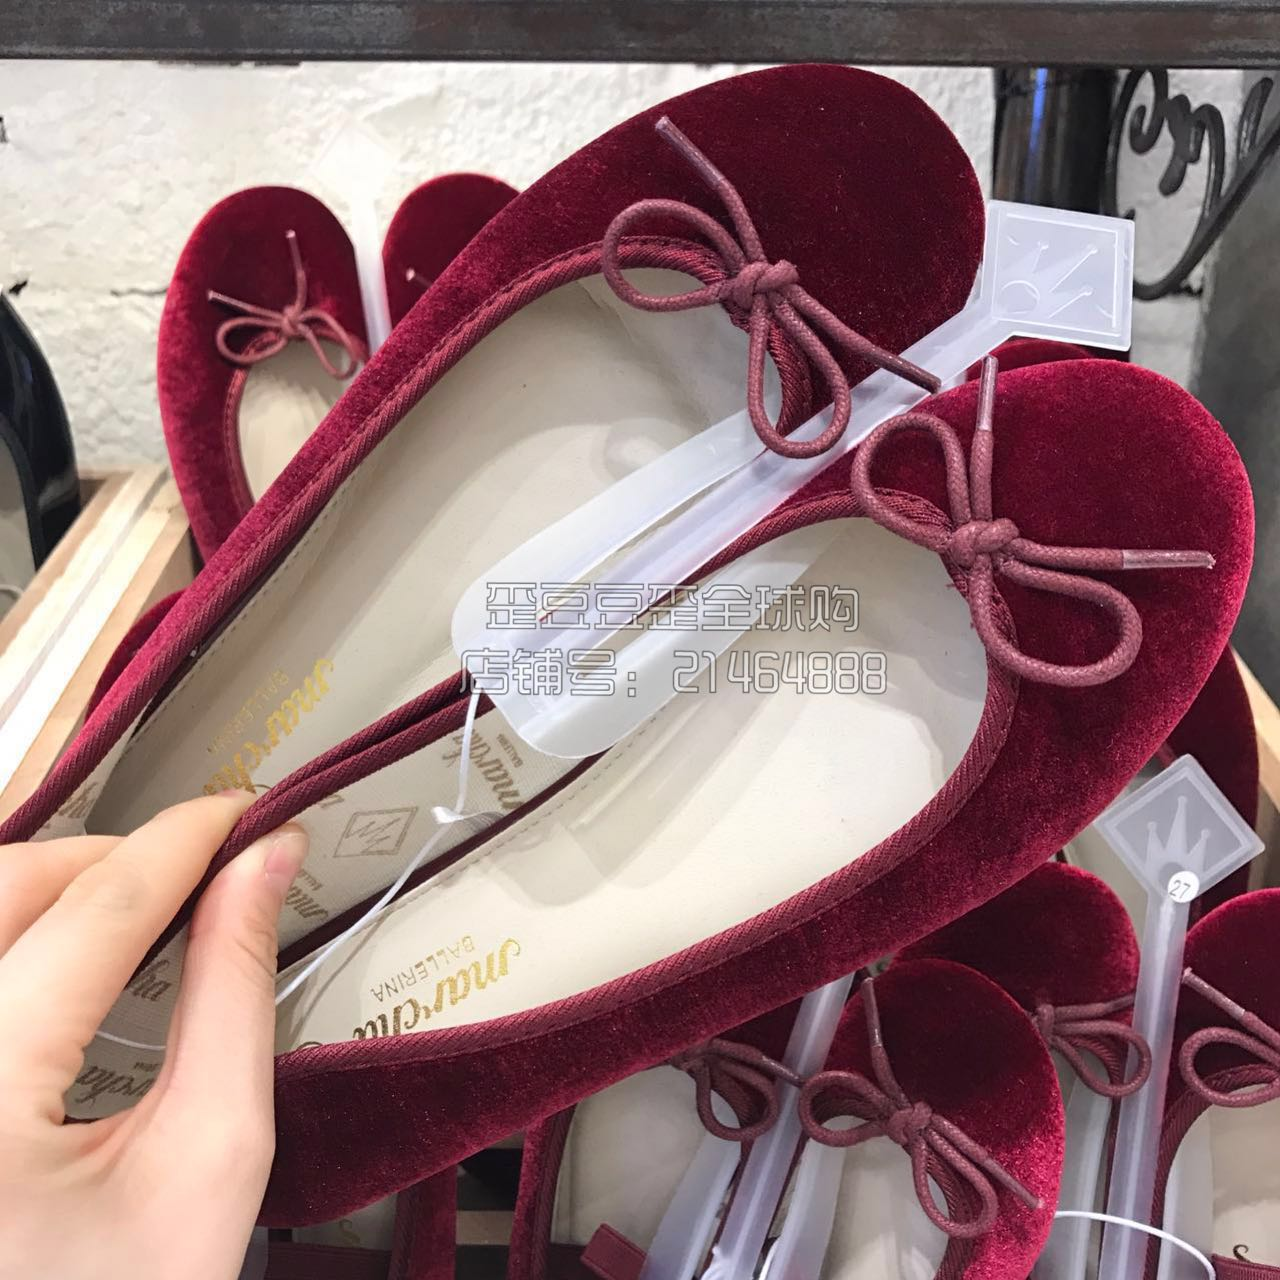 Marcha bowknot ballet autumn and winter corduroy flat shoes